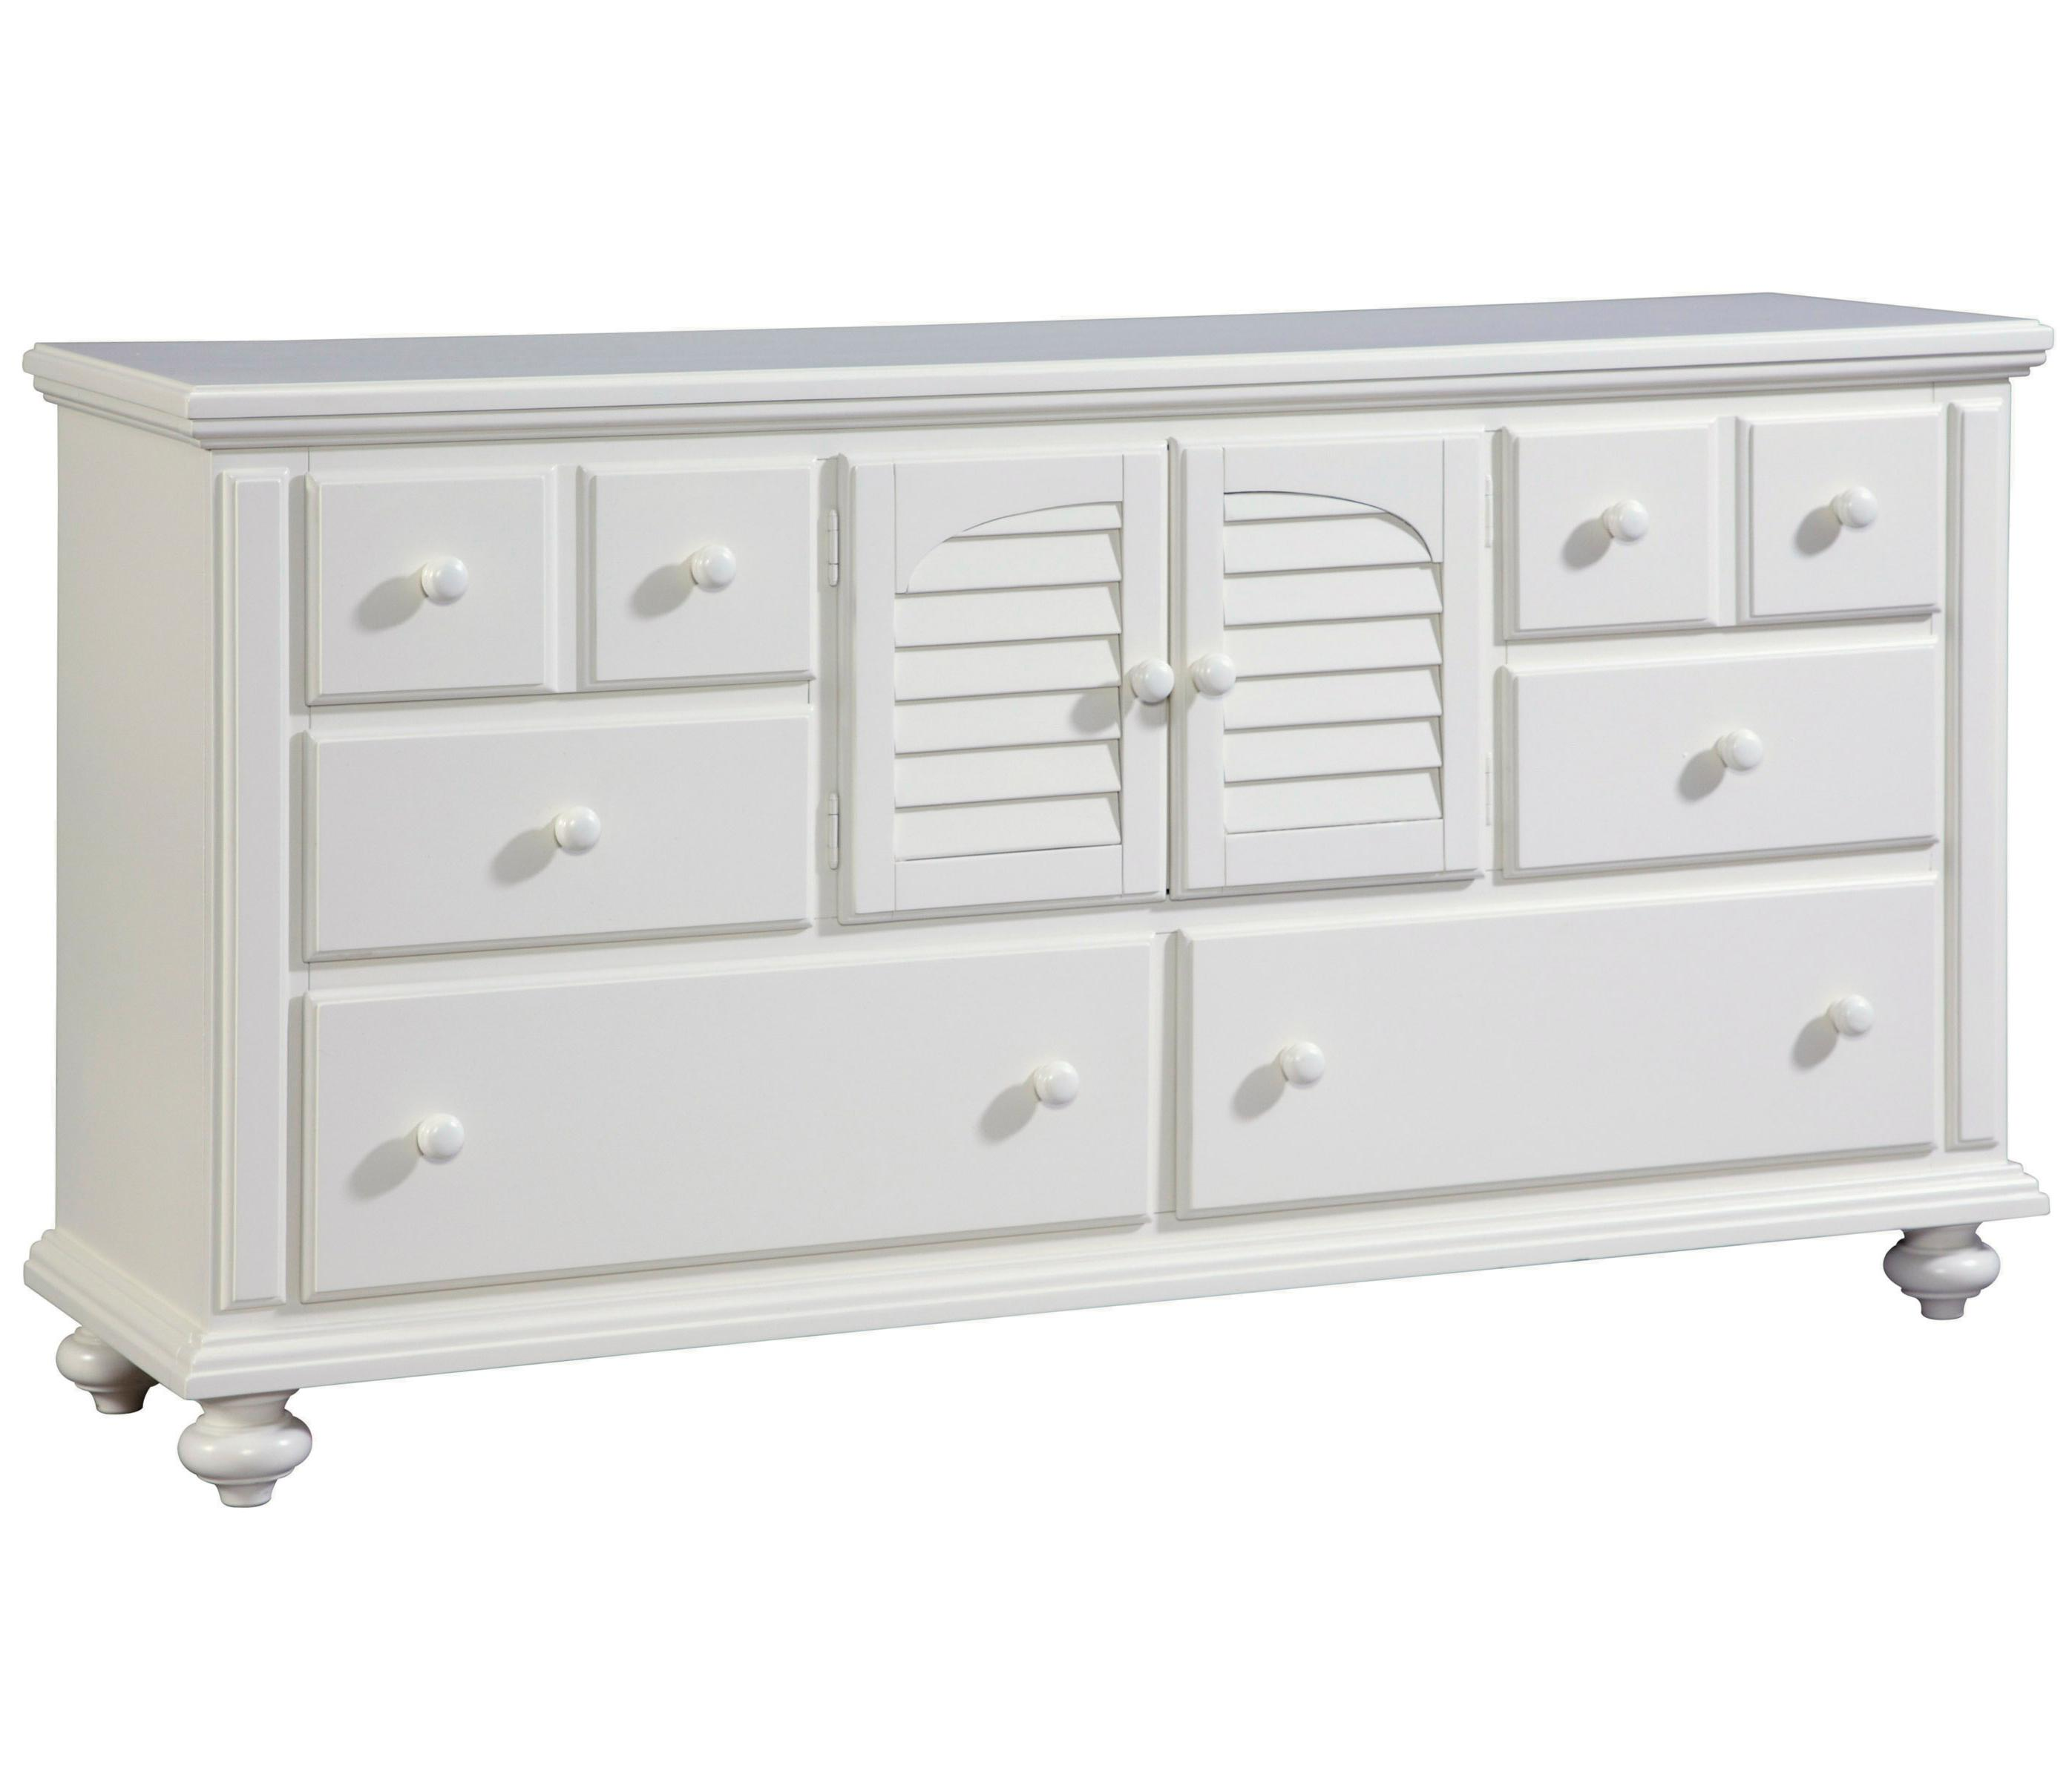 Broyhill Furniture Seabrooke Door Dresser - Item Number: 4471-232